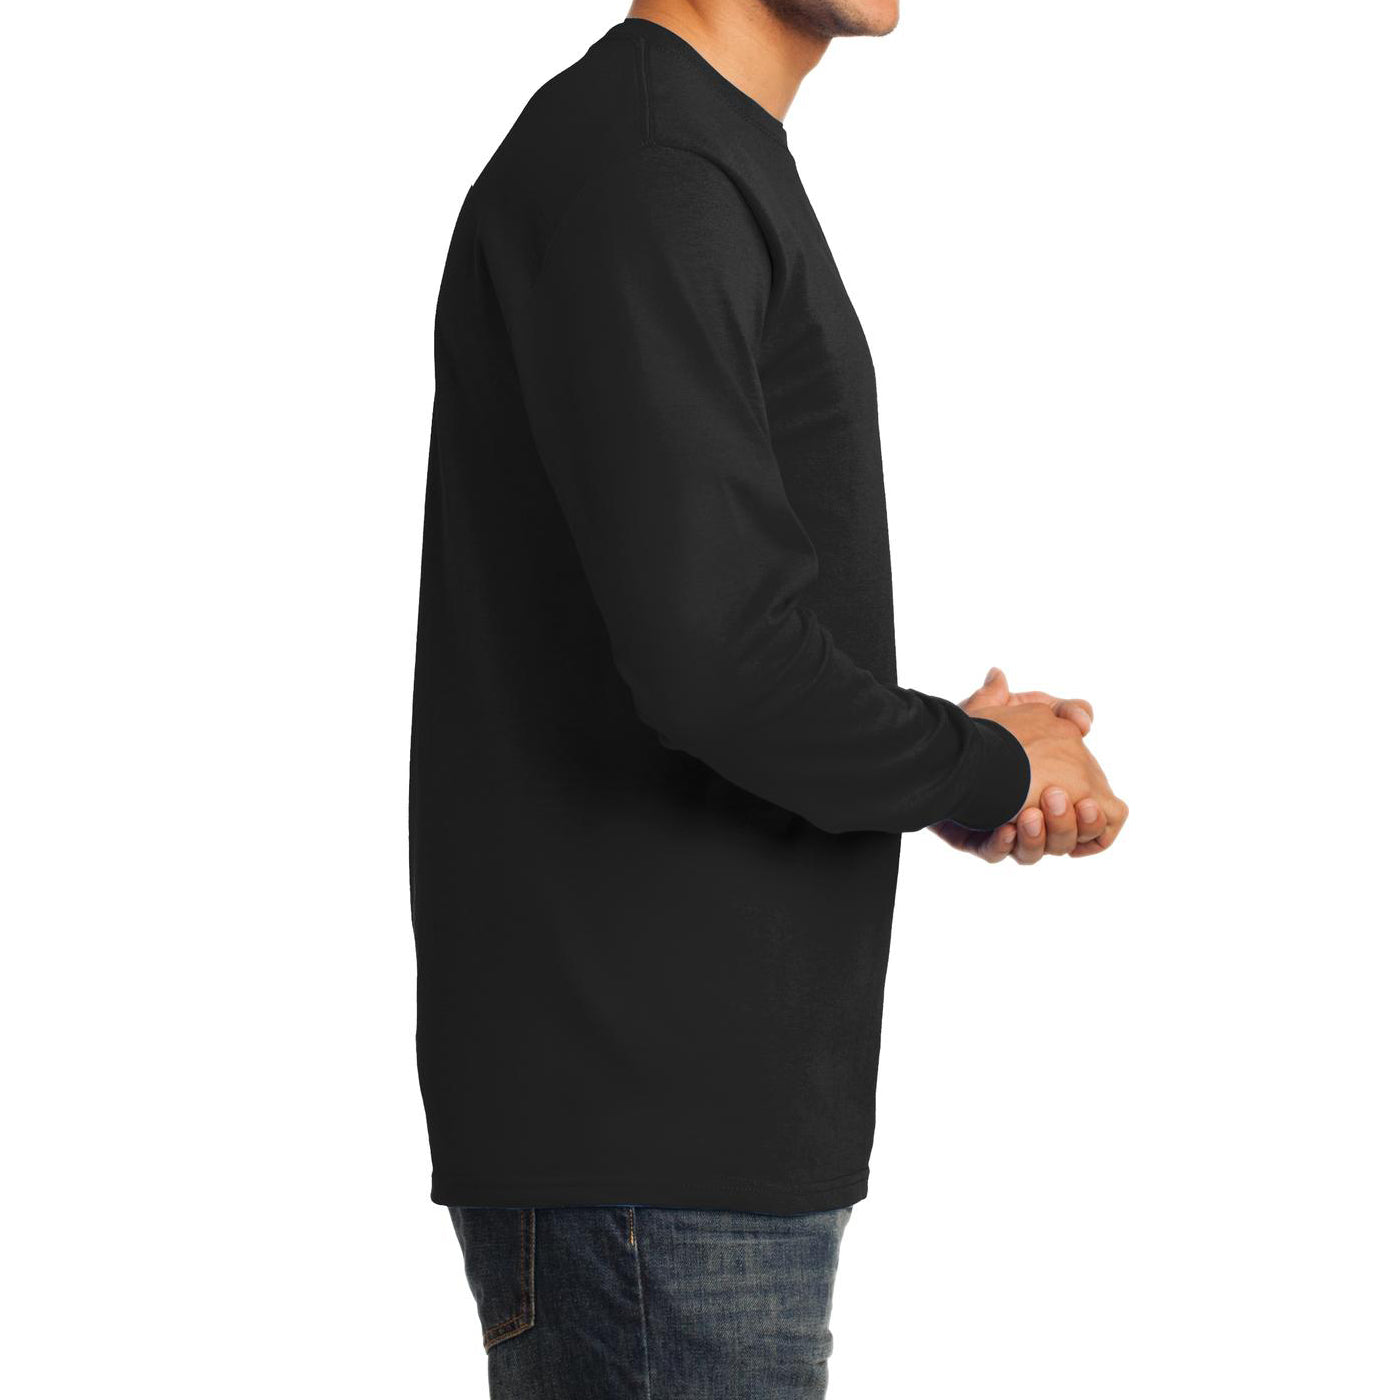 Men's Long Sleeve Essential Tee - Jet Black - Side